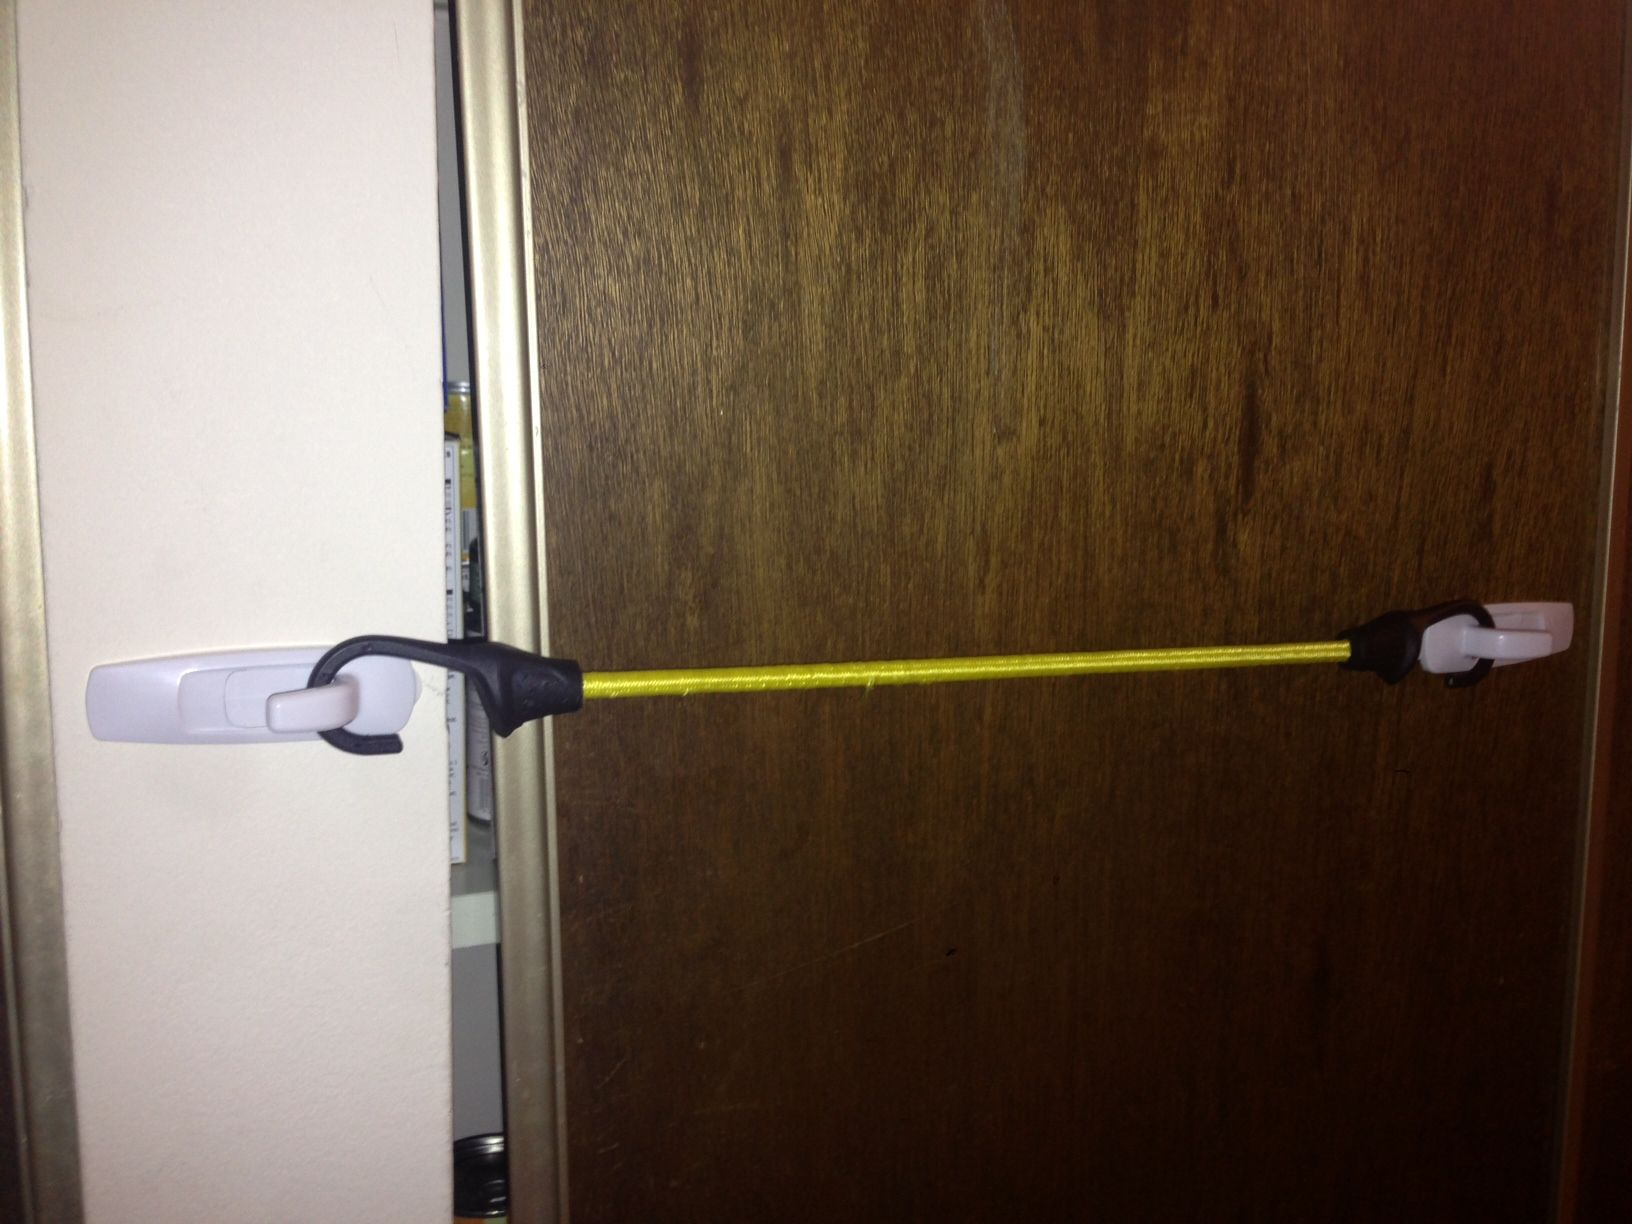 DIY: Ghetto Child Lock For Cheap Plywood Sliding Doors.